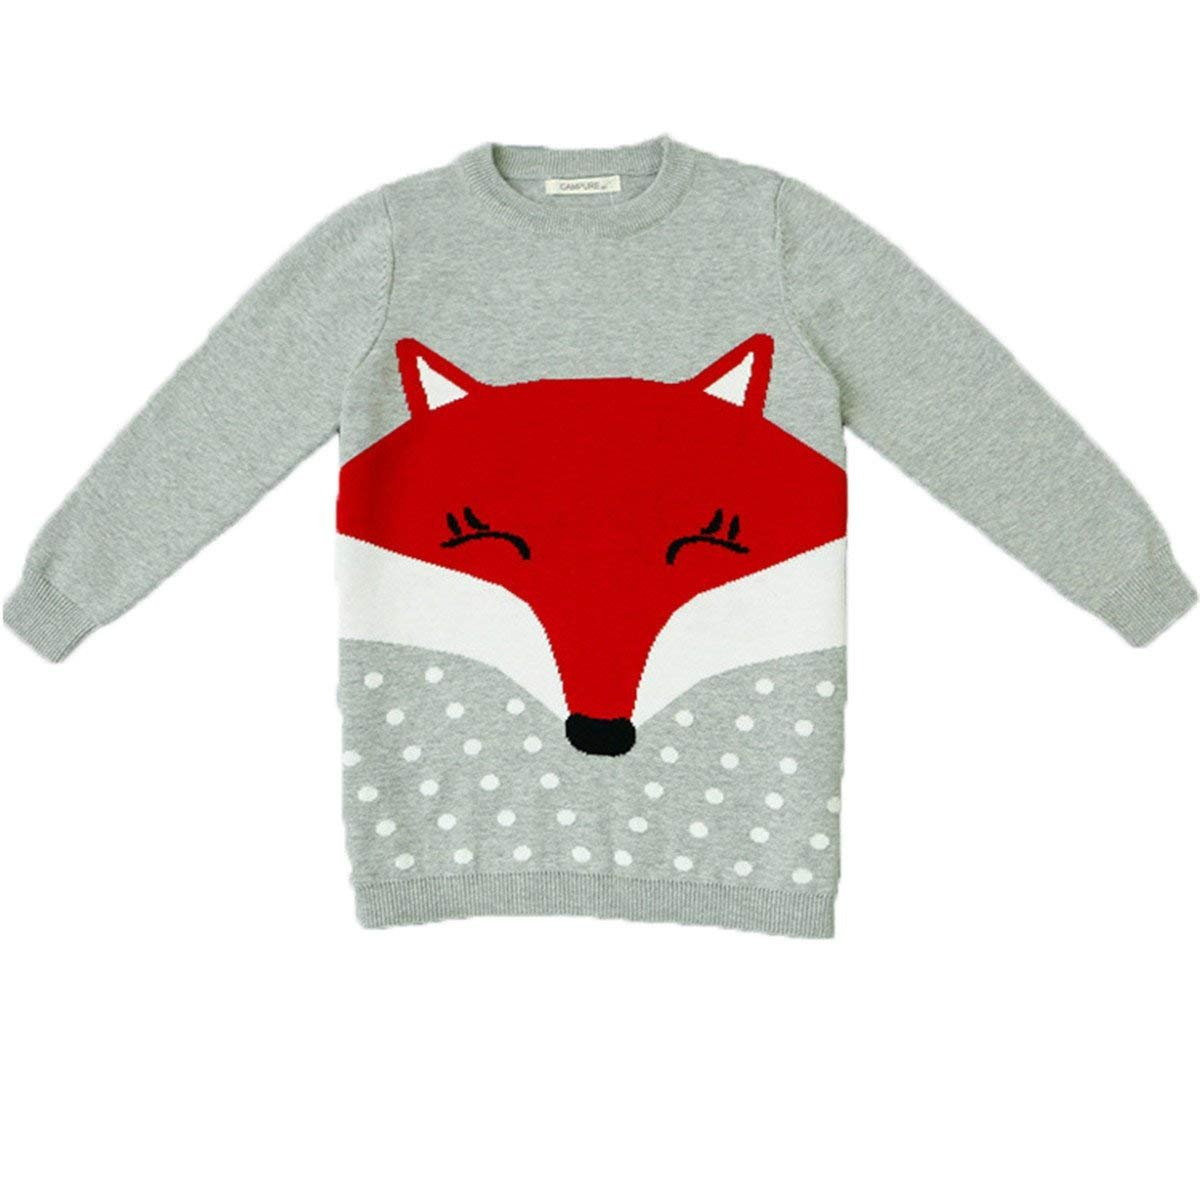 Maylife Little Girls Kids Baby Toddler Round Neck Fox Pineapple Fine Knit Sweatshirt Pullover by Maylife (Image #1)